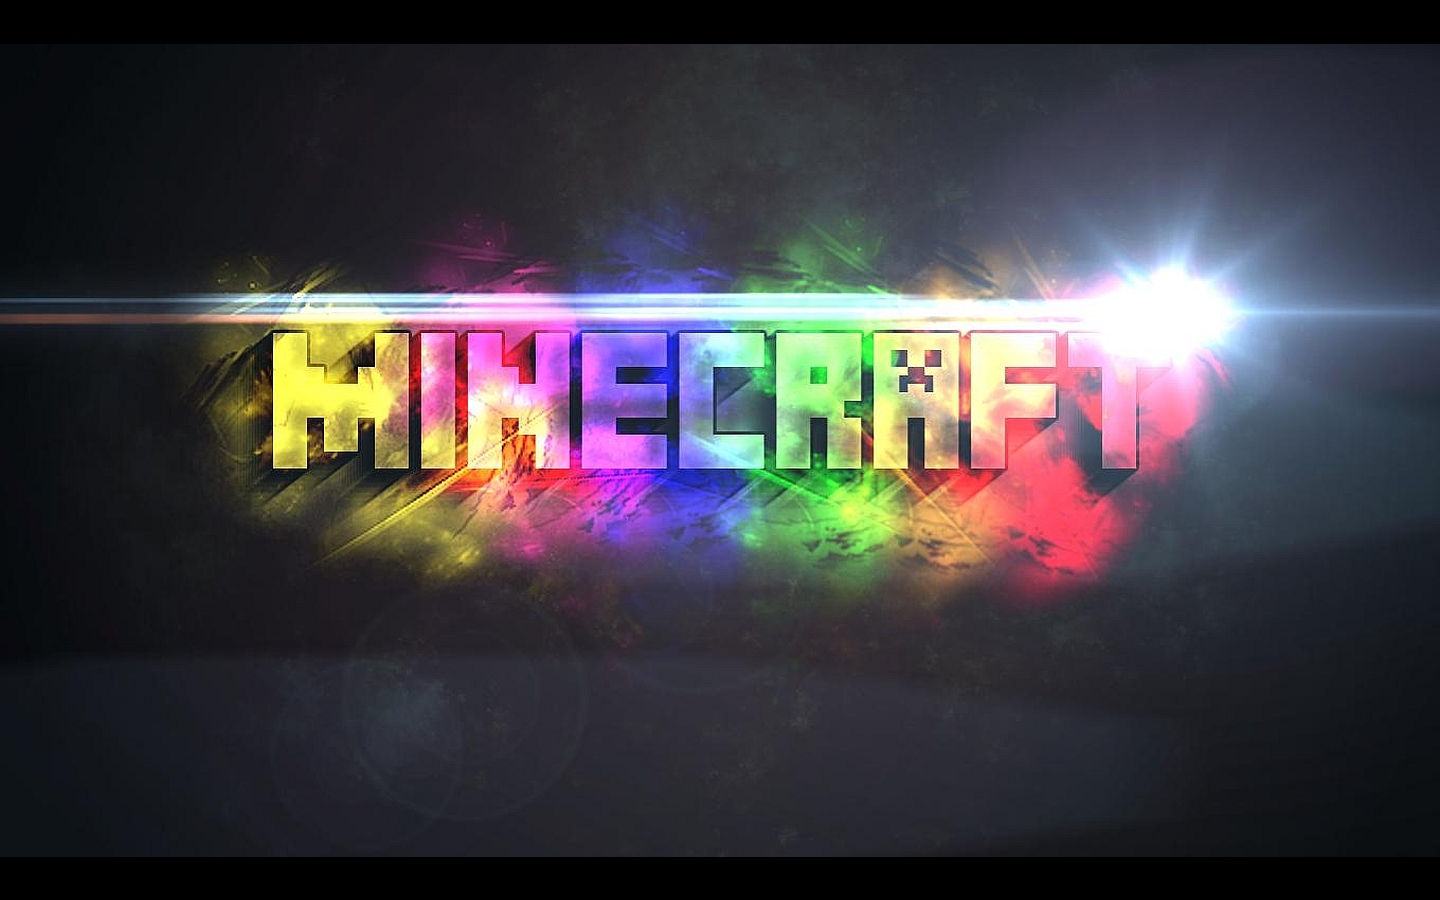 Minecraft Computer Wallpapers Desktop Backgrounds 1440x900 ID 1440x900